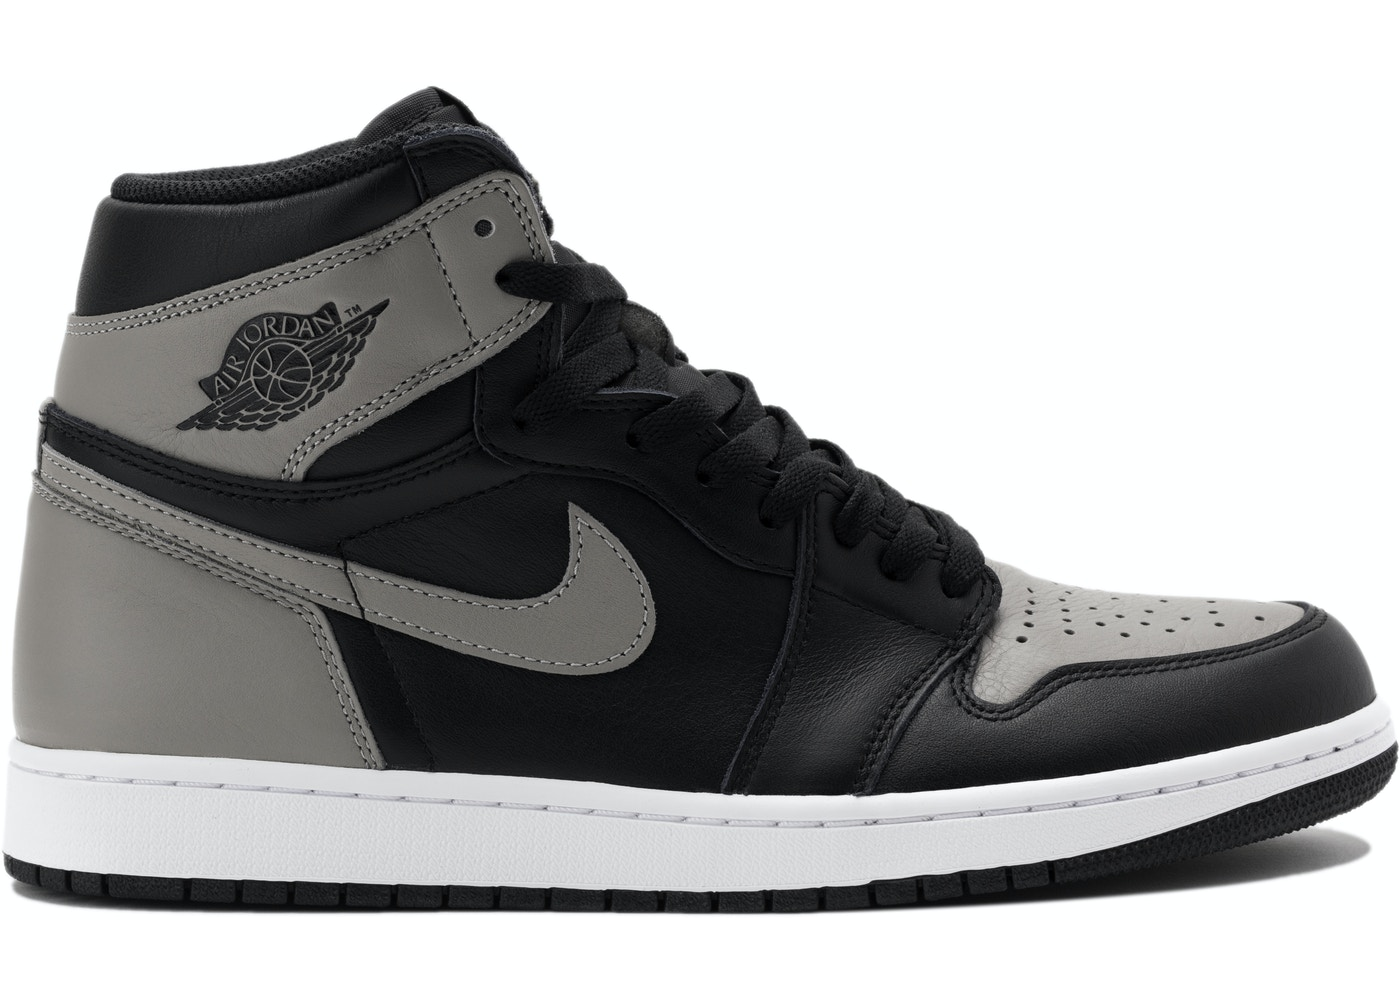 Jordan 1 Retro High Shadow (2018) - 555088-013 9350afb42